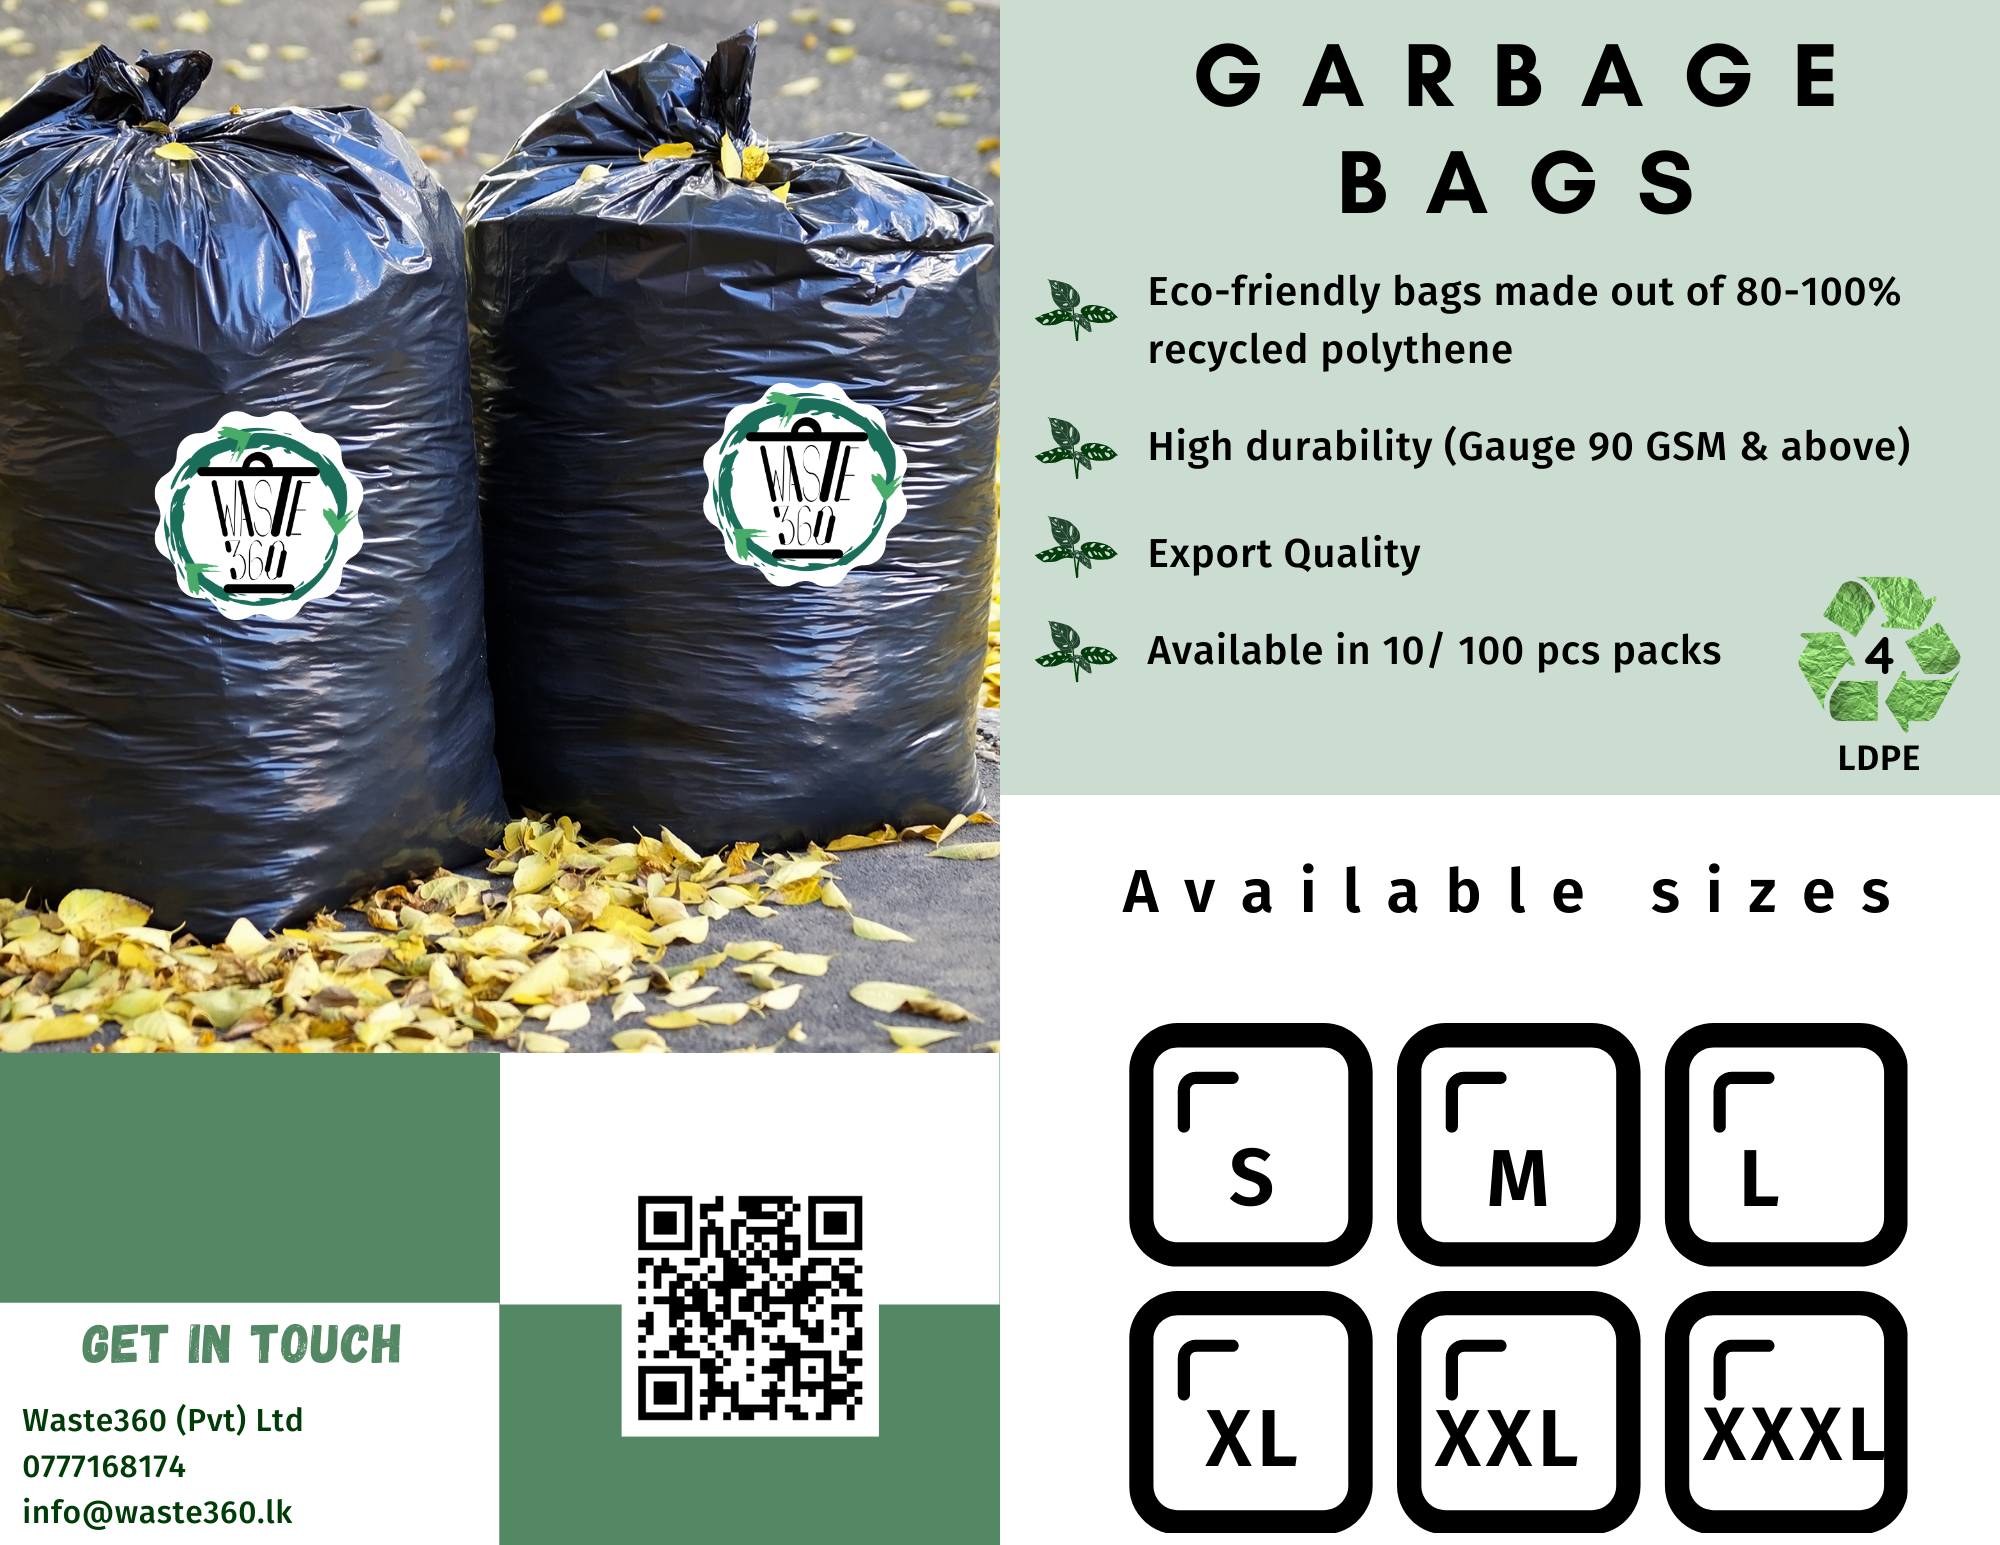 Oxo-Biodegradable Garbage Bags